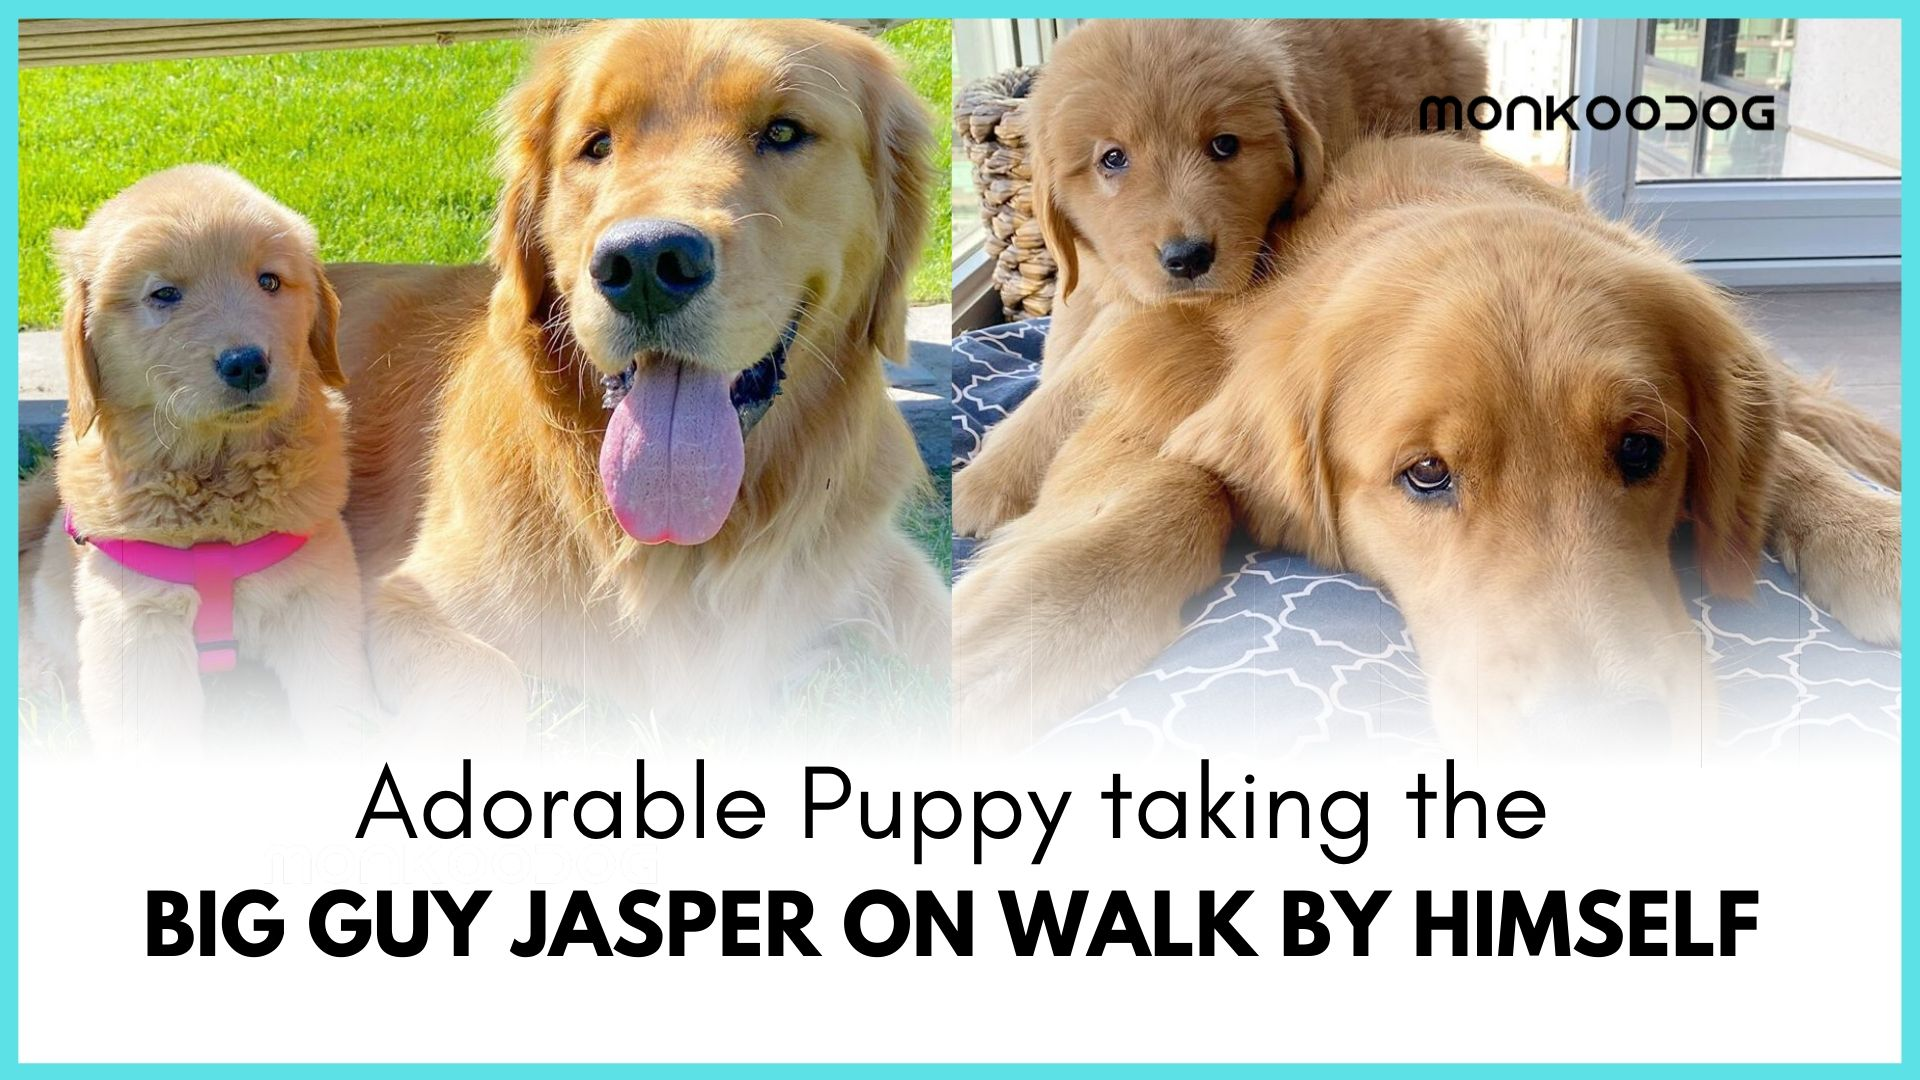 Puppy leading the way with the leash of an Adult Puppy on a walk is the latest viral international craze